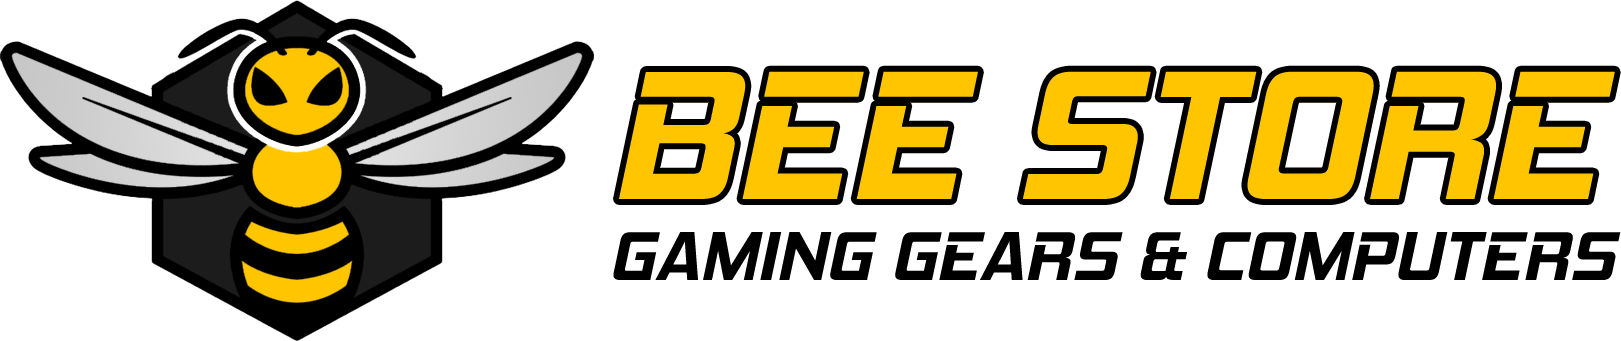 Bee Gaming Gear's Computer